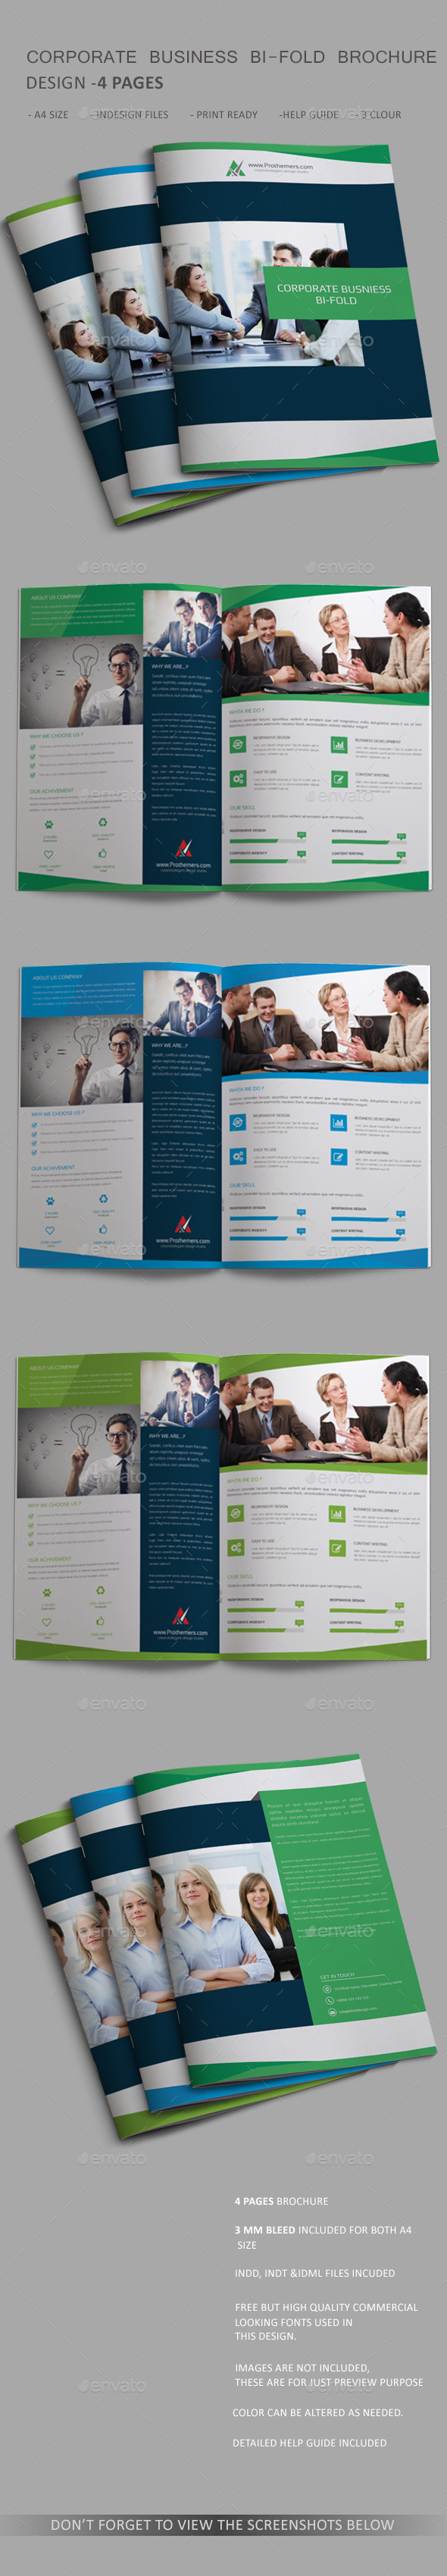 4 page brochure template free akba greenw co